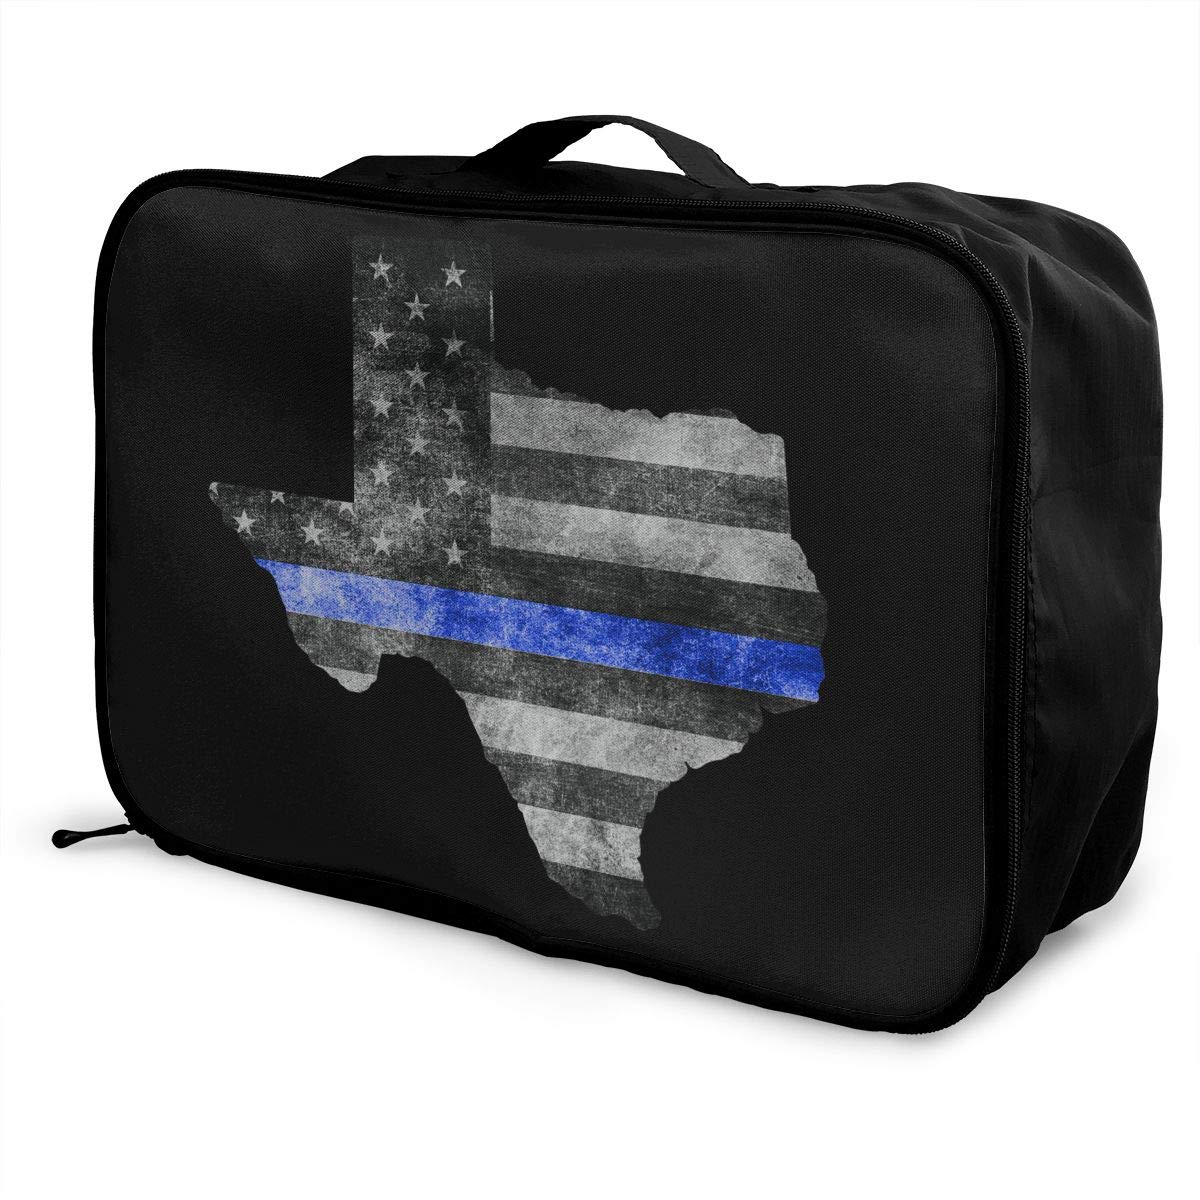 Texas Blue Lives Matter Lightweight Large Capacity Portable Luggage Bag Travel Duffel Bag Storage Carry Luggage Duffle Tote Bag